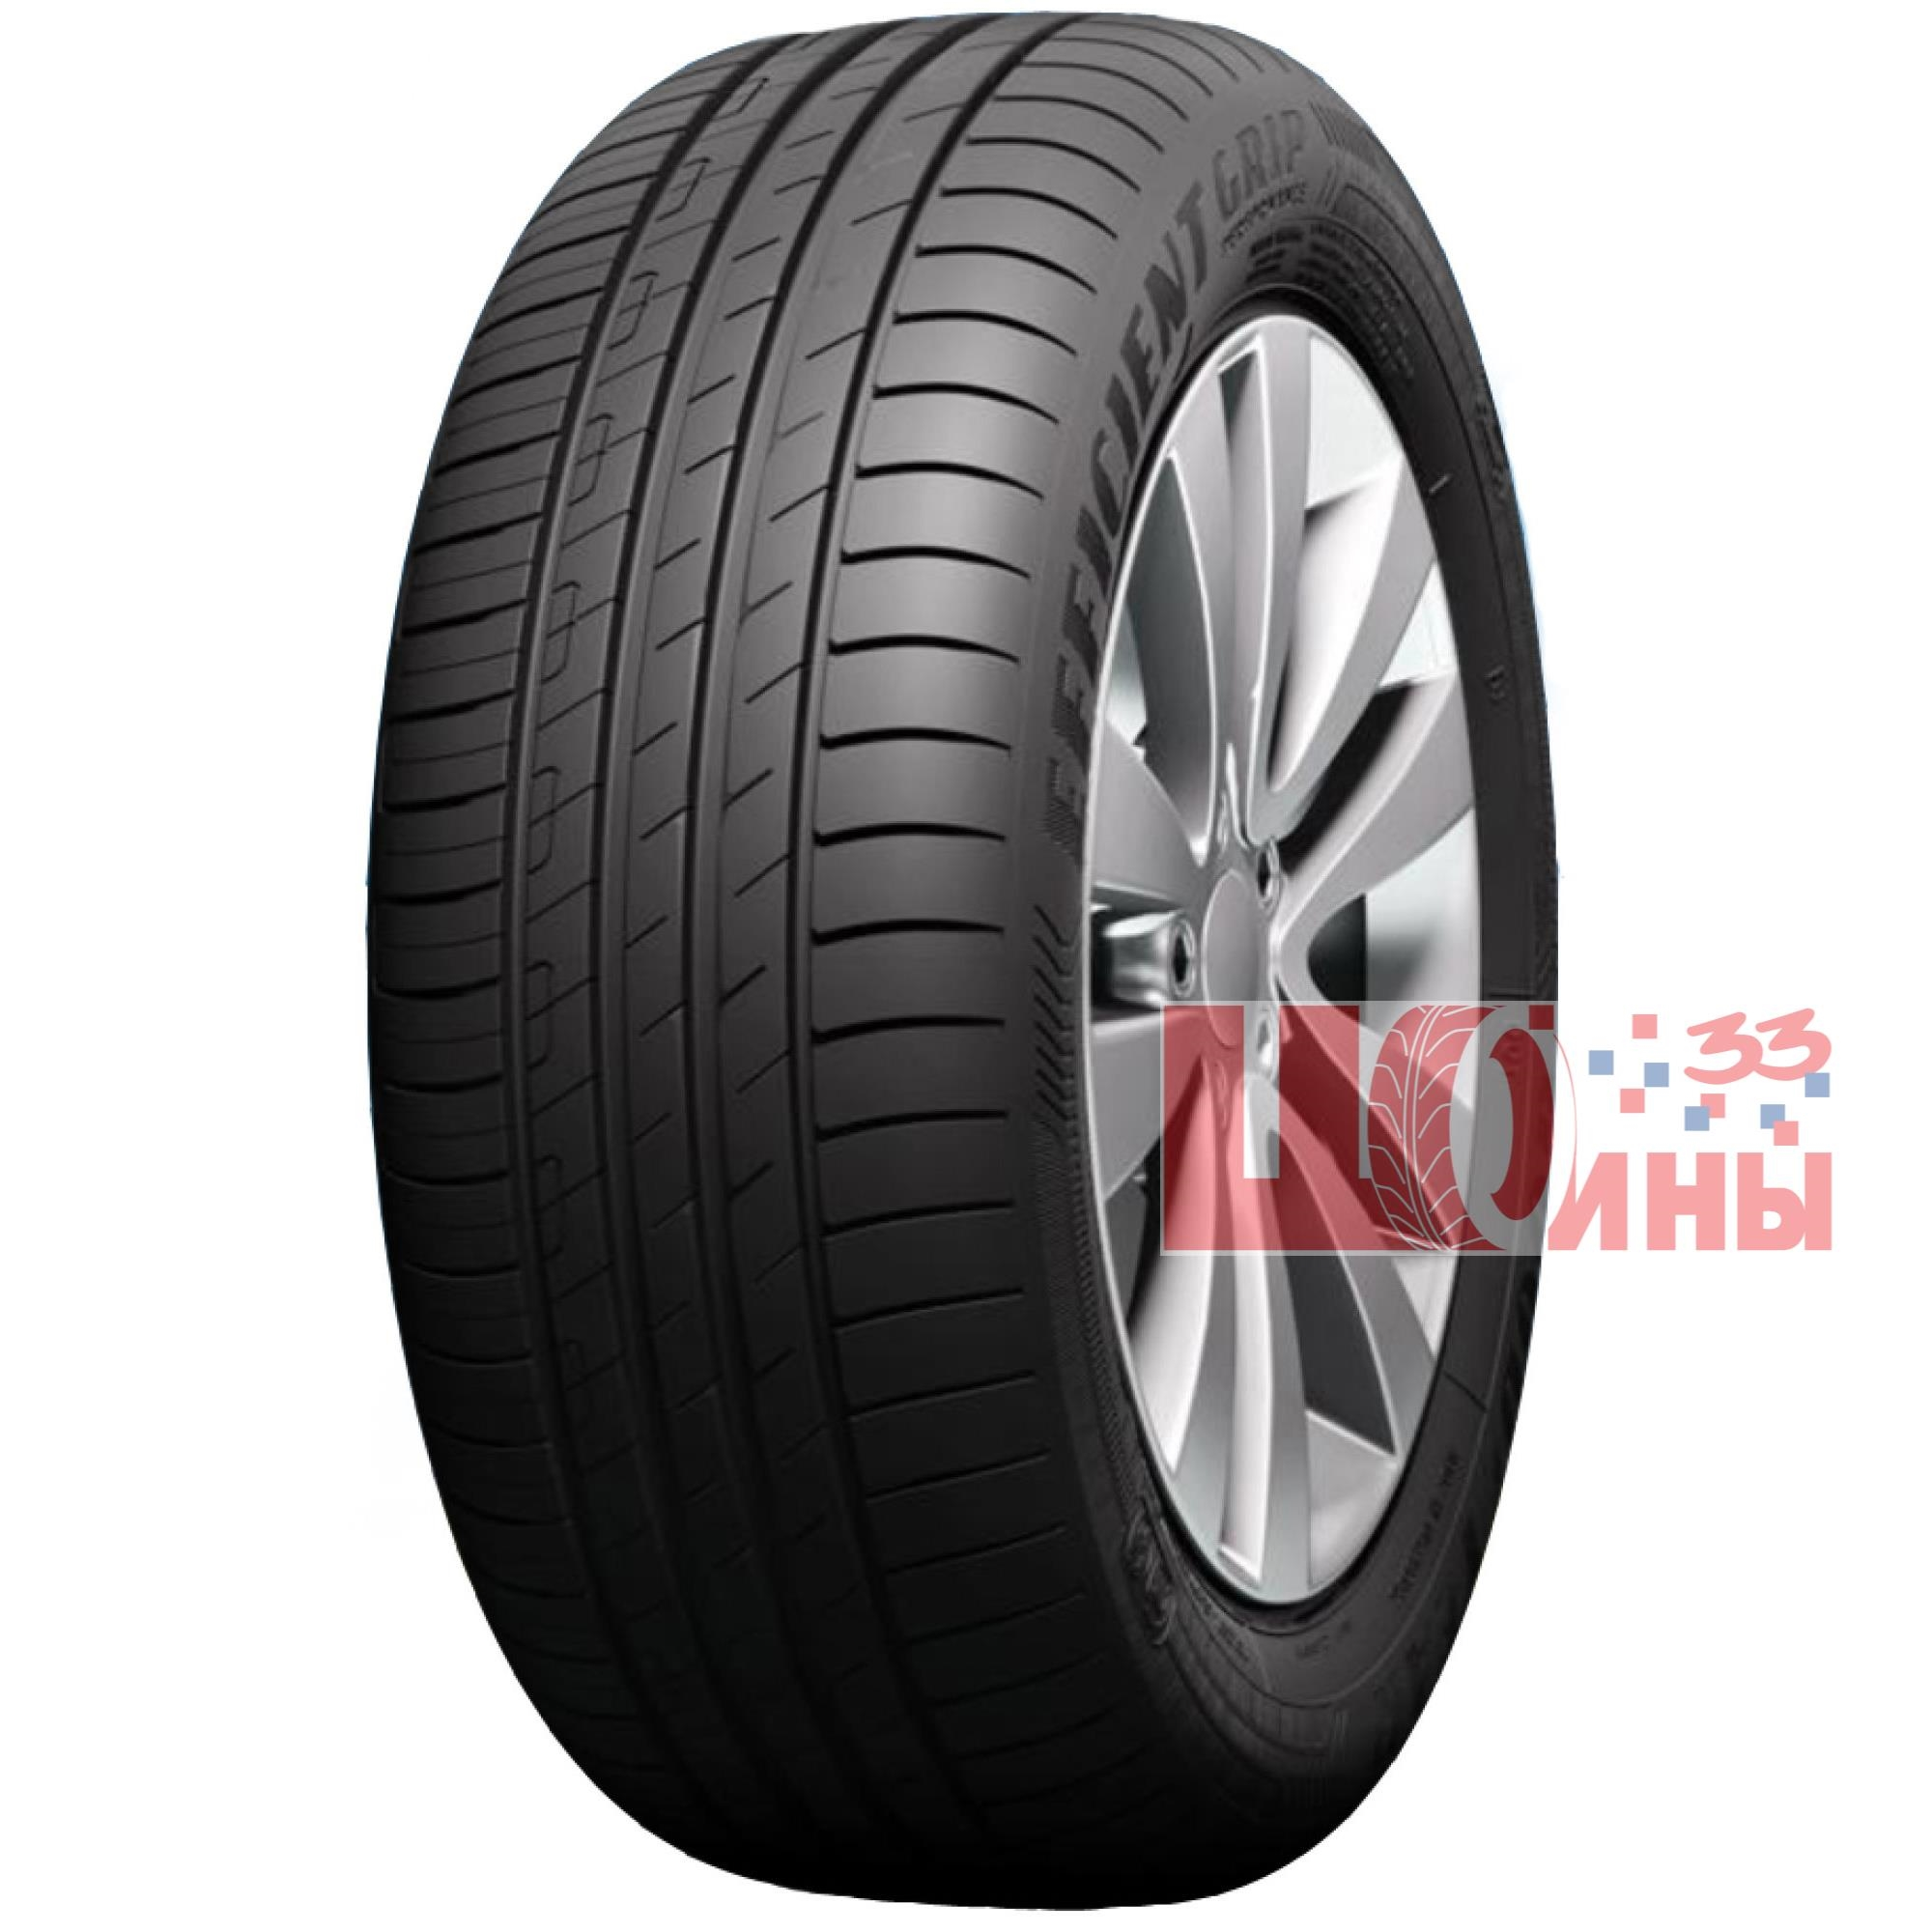 Б/У 225/55 R17 Лето GOODYEAR Efficient Grip Perfomance Кат. 5